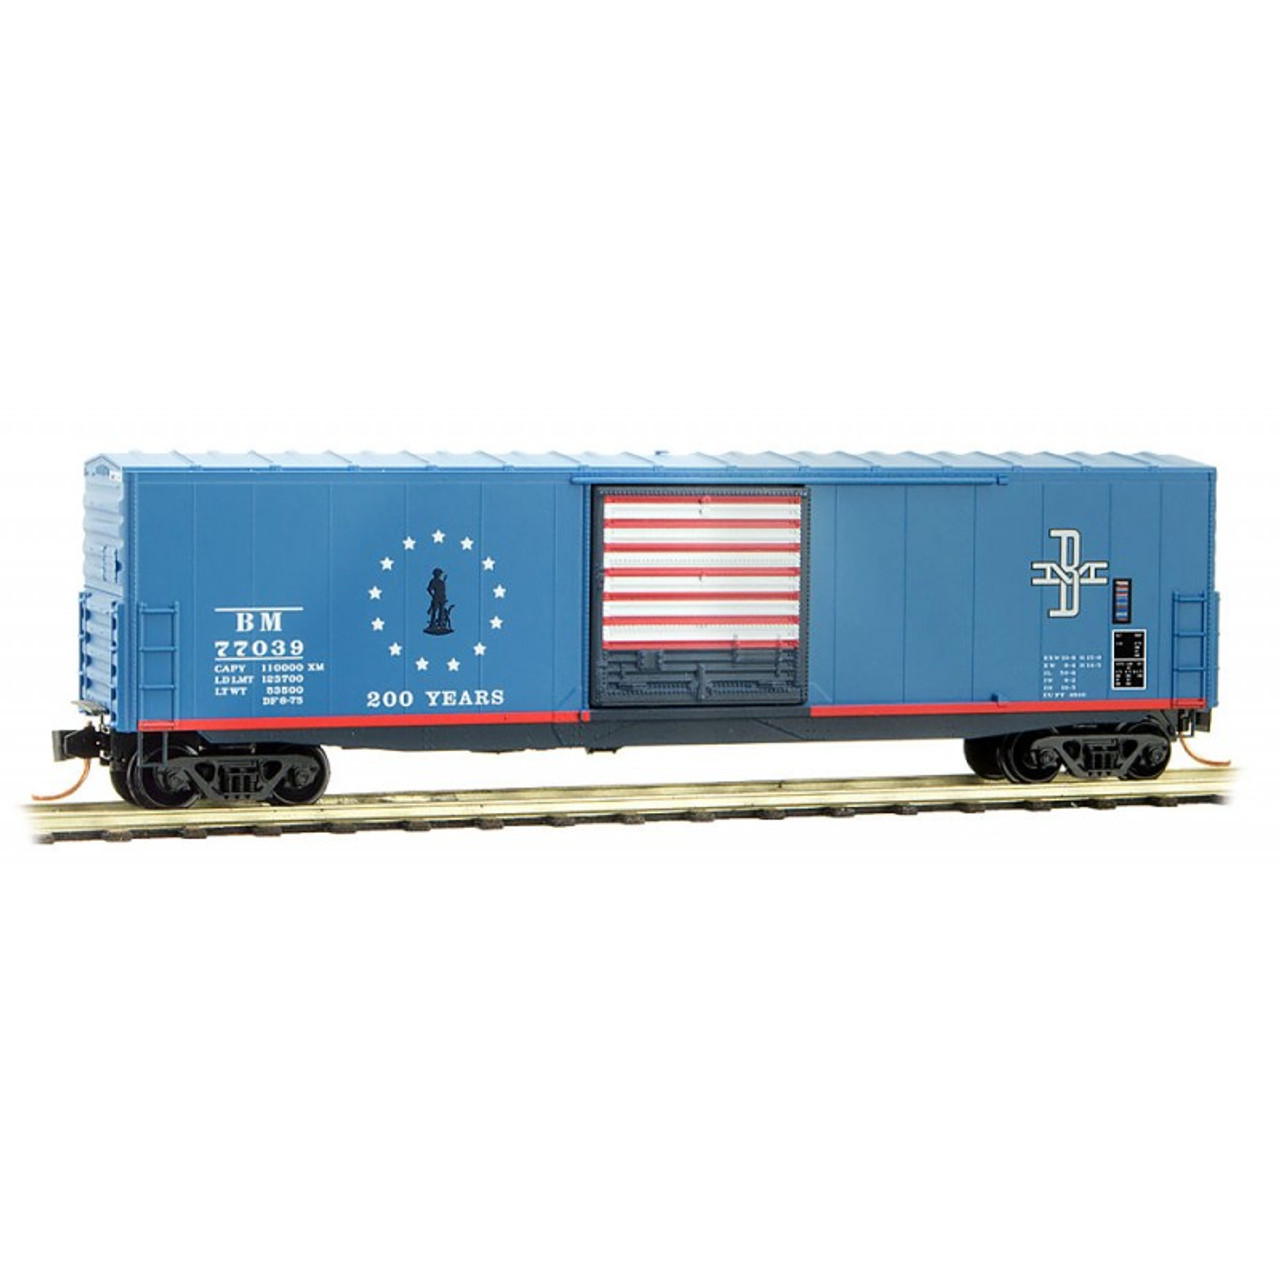 K4 G 1:24 Decals Central Of New Jersey Express Boxcar Yellow